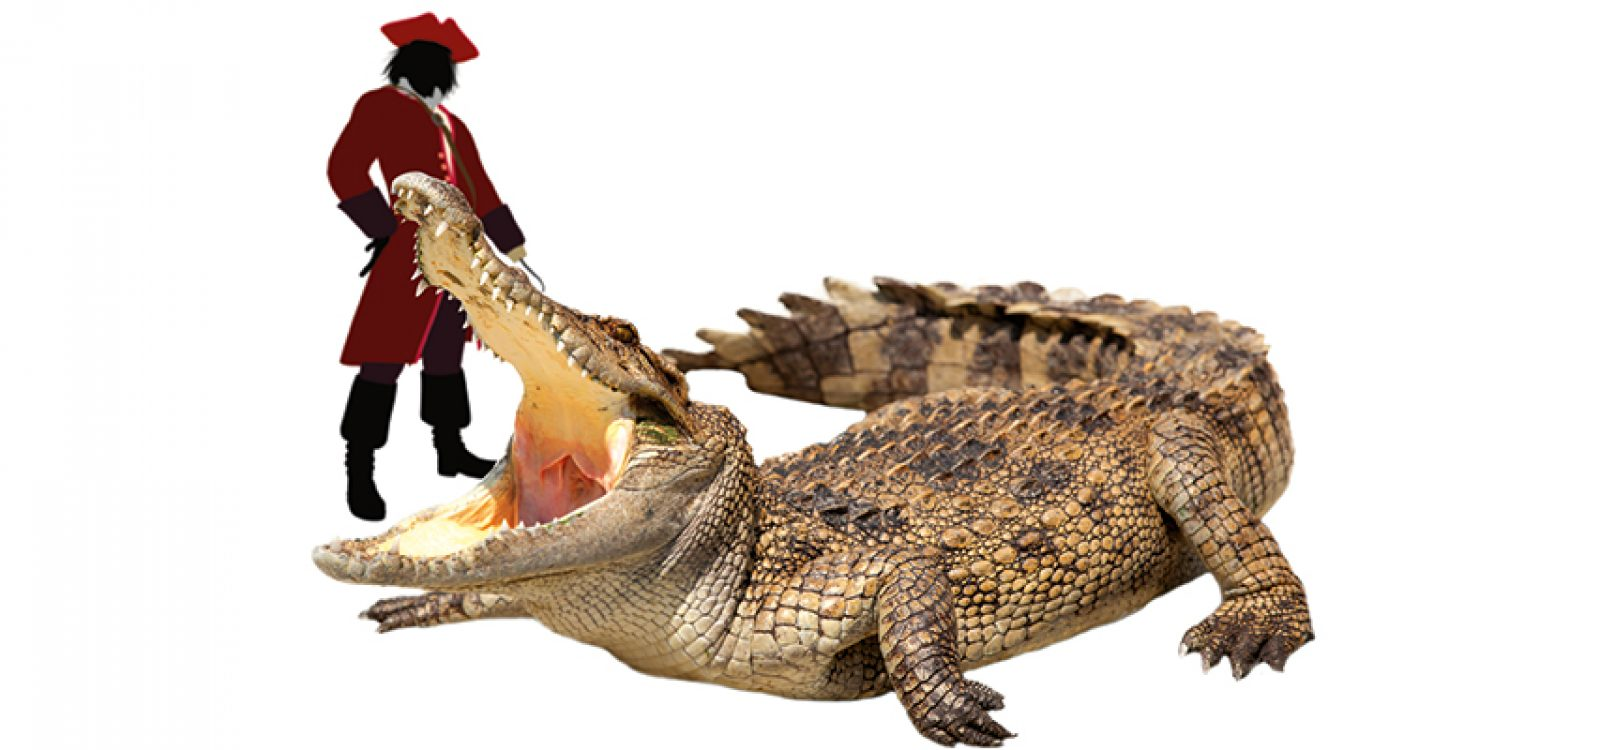 Never Smile at a Crocodile – The Group Risk Story